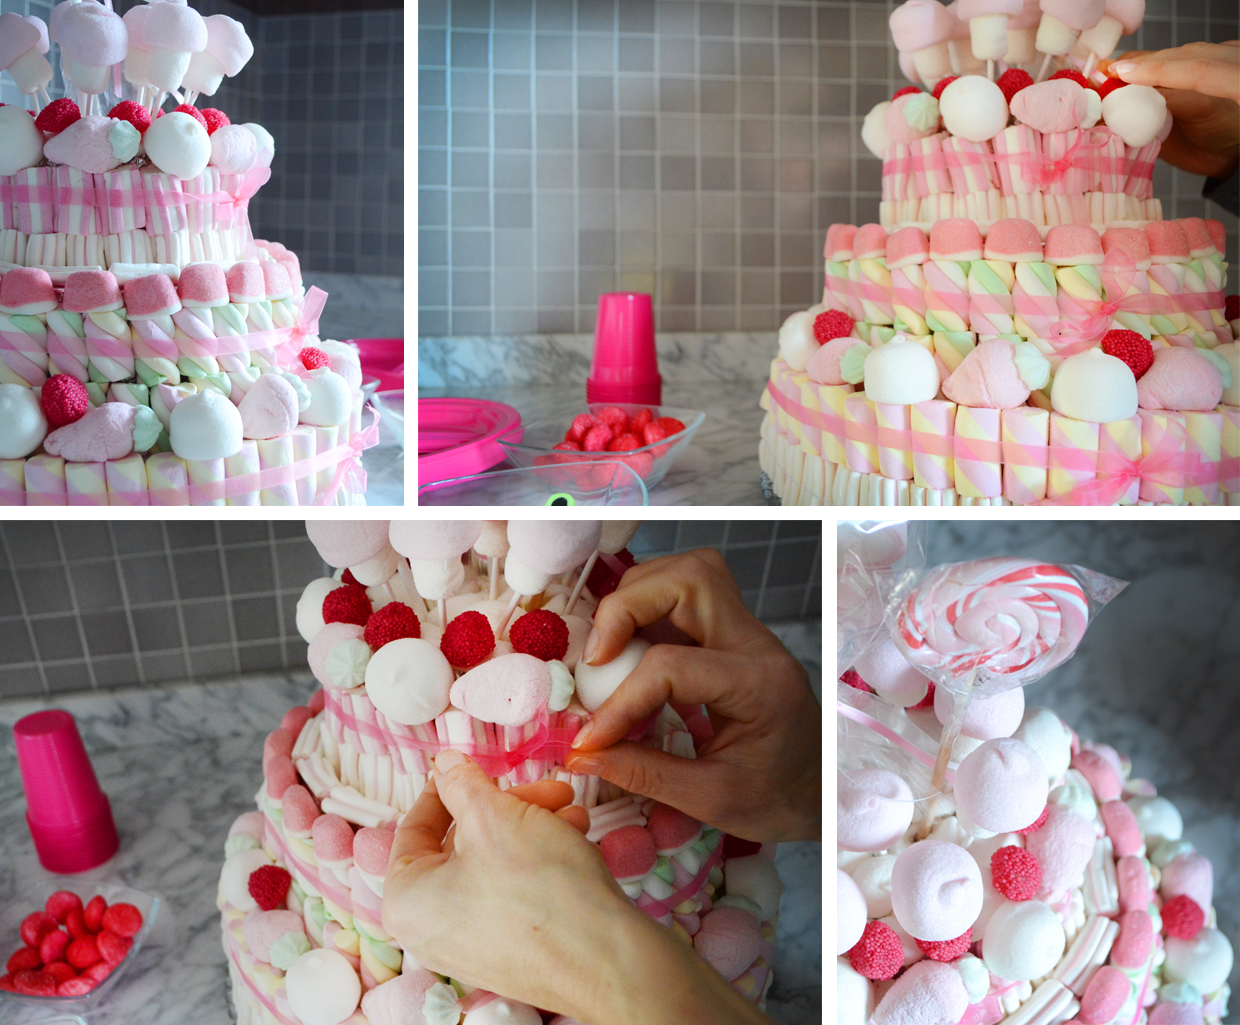 Tweedot blog magazine - torta di marshmallows per bambina